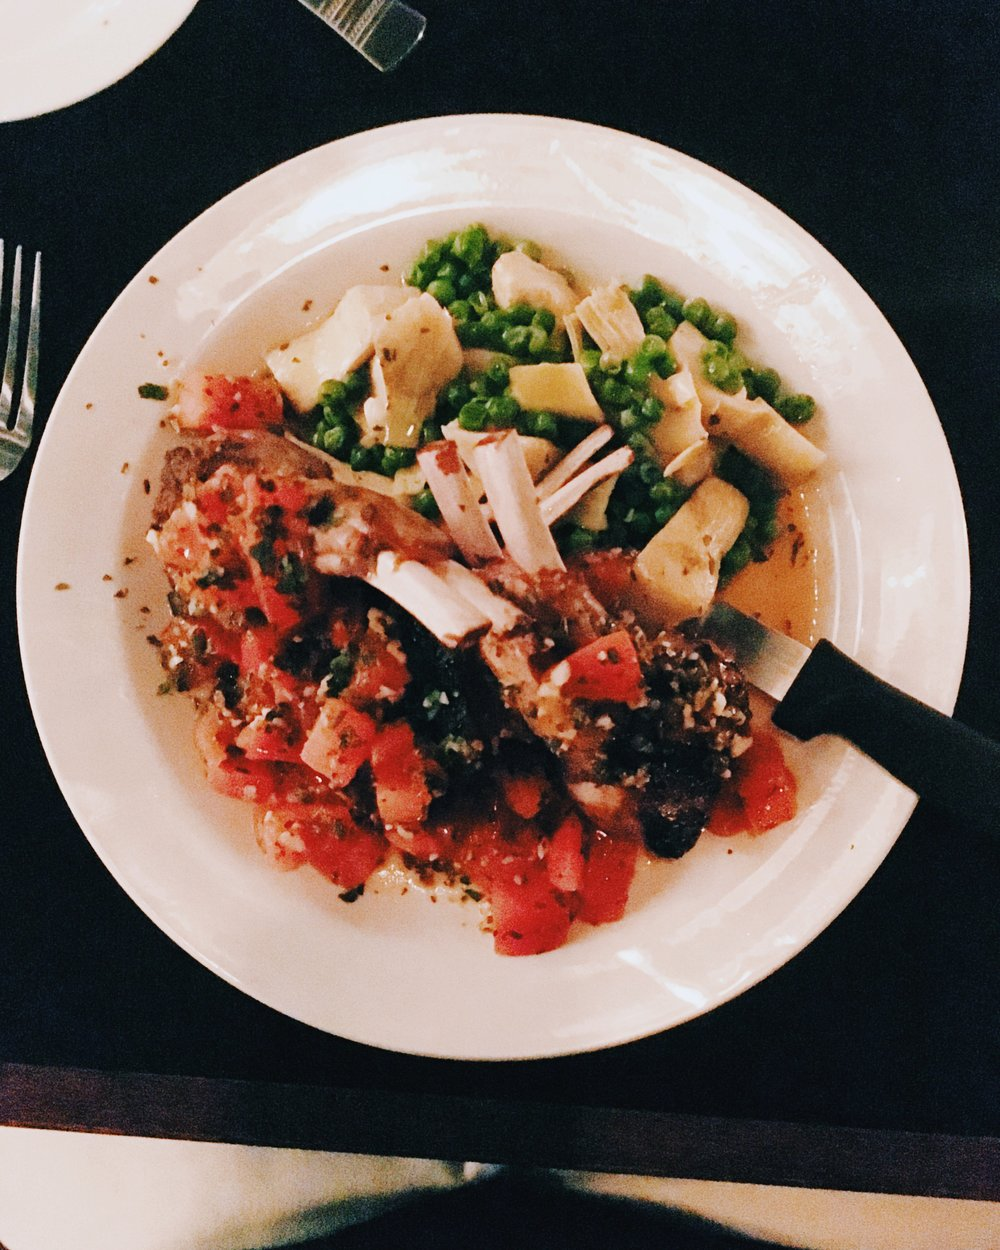 Demi's - Lamb chops with fresh tomatoes, garlic, herbs served w/ peas and artichokes.